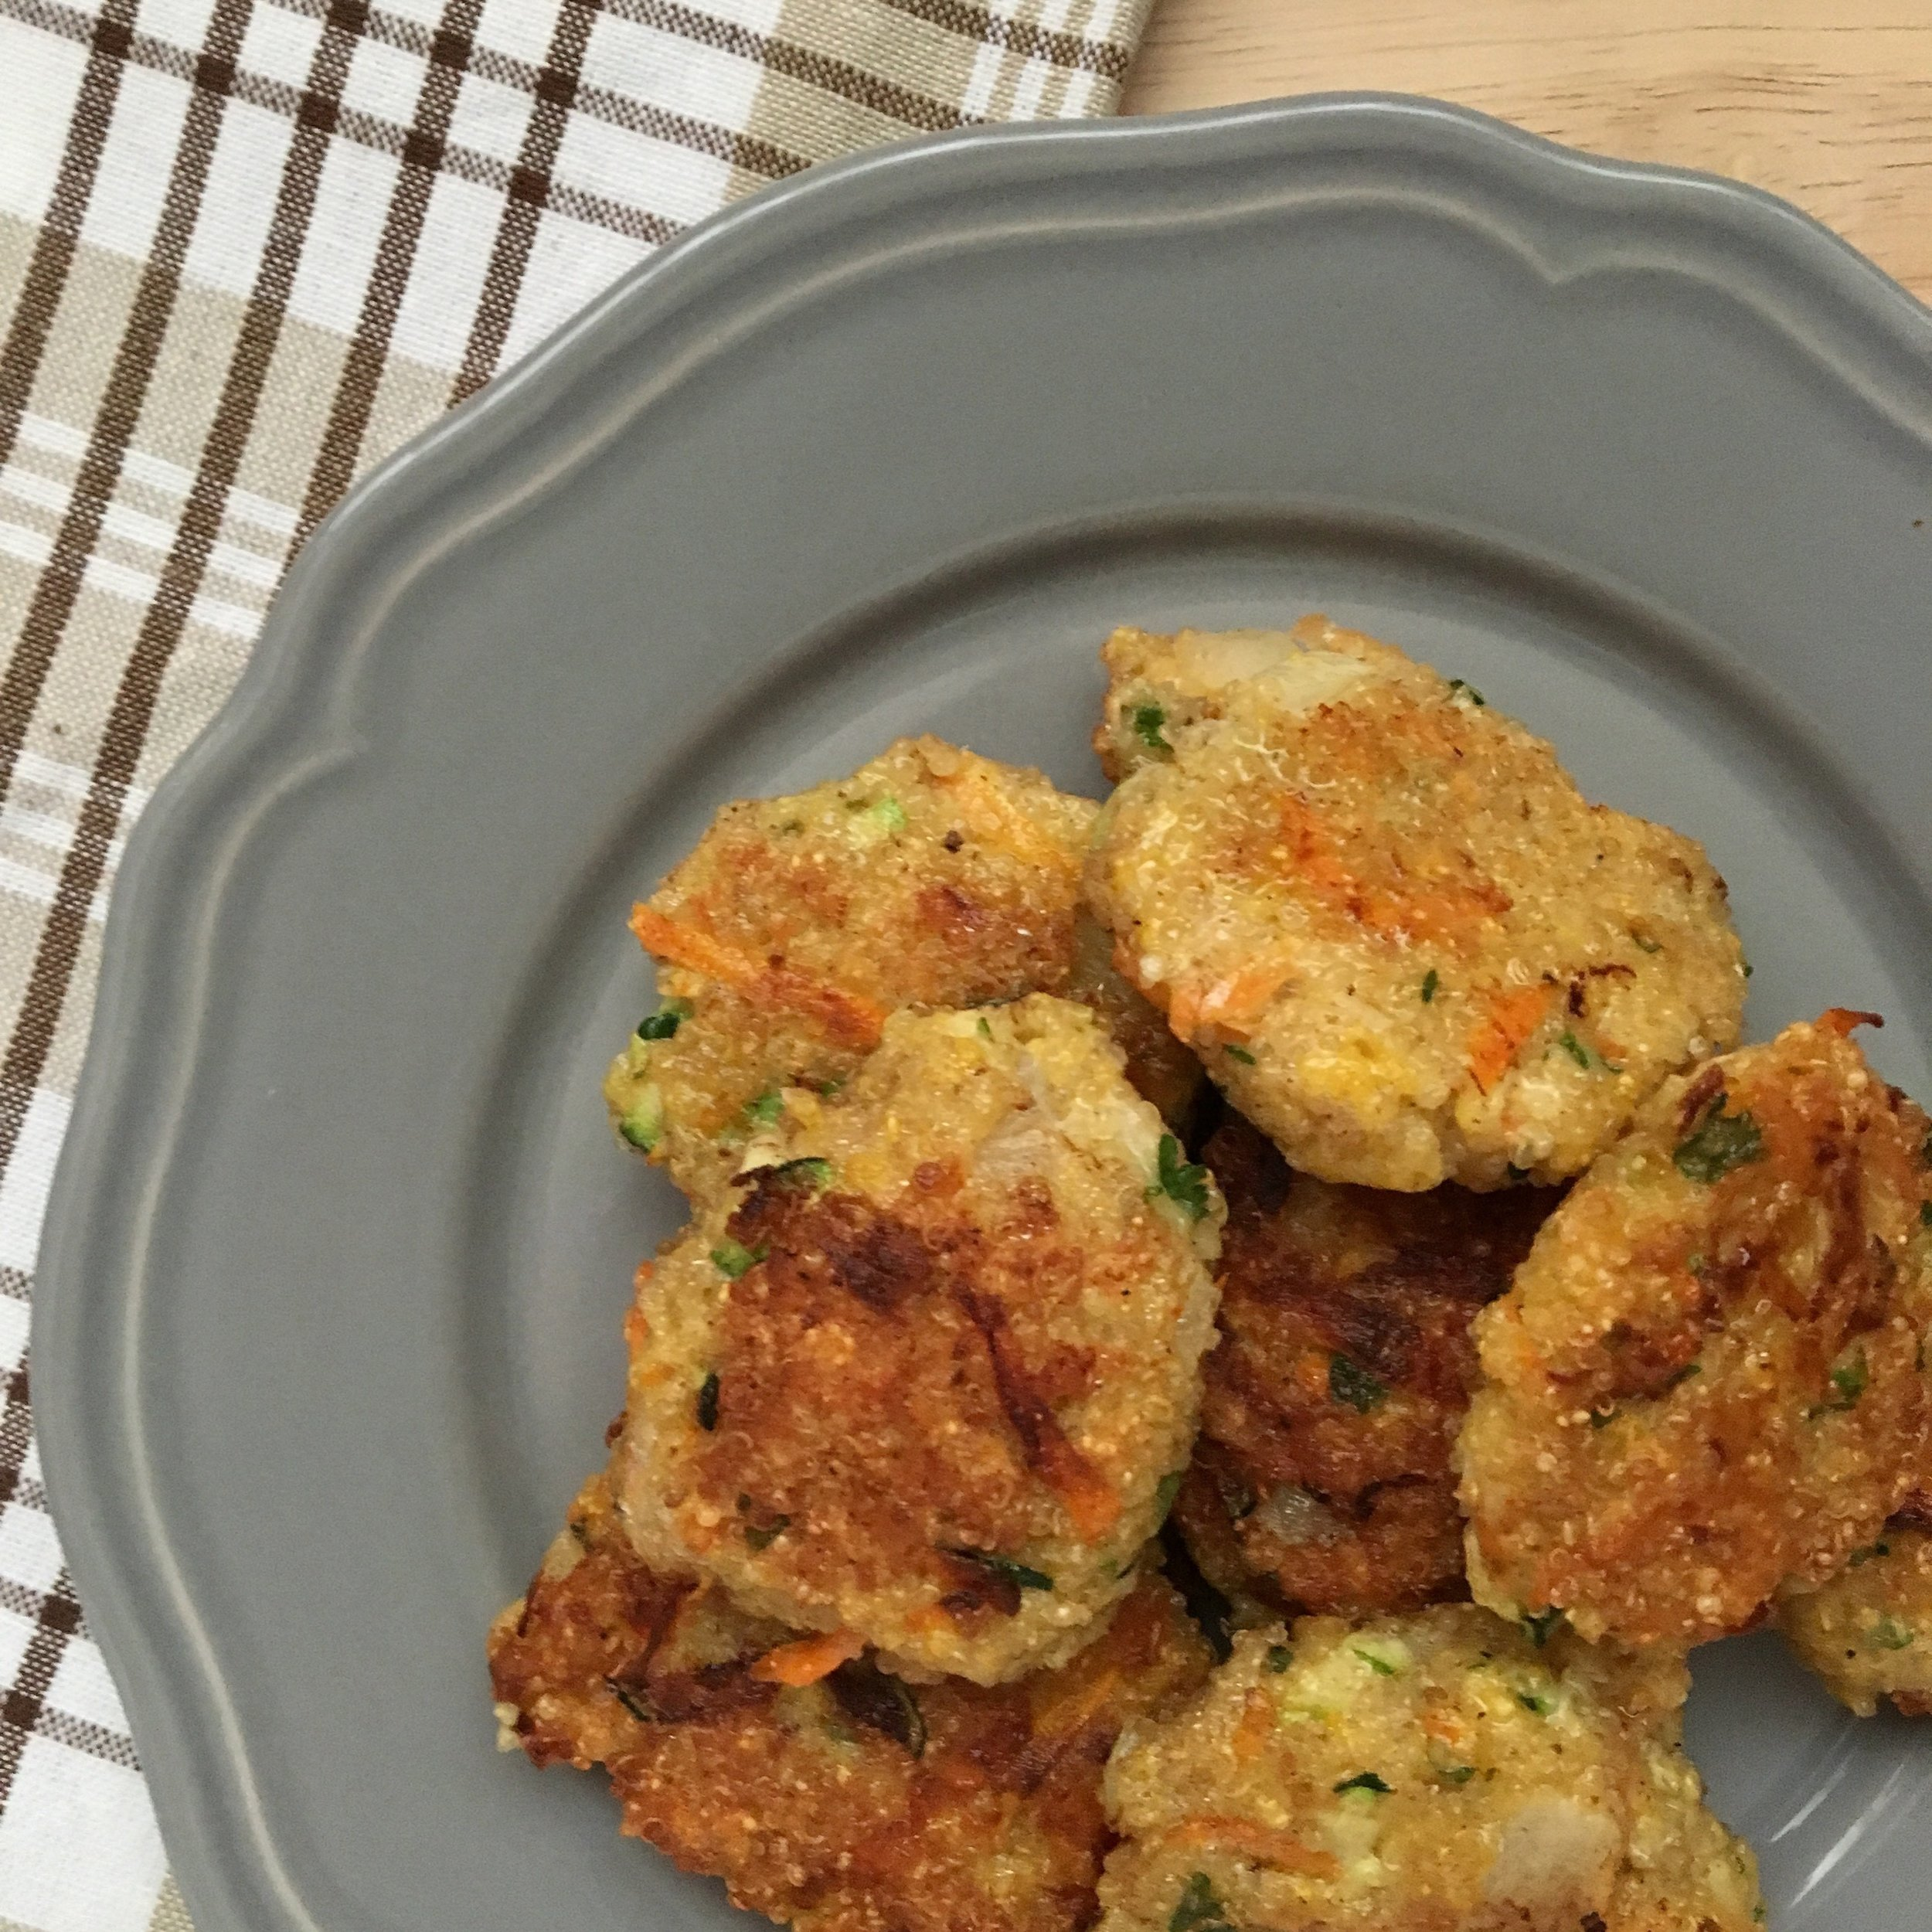 These simple Crispy Quinoa Cakes are a simple versatile dish! They're a great meatless, protein rich option that even meat eaters will love!